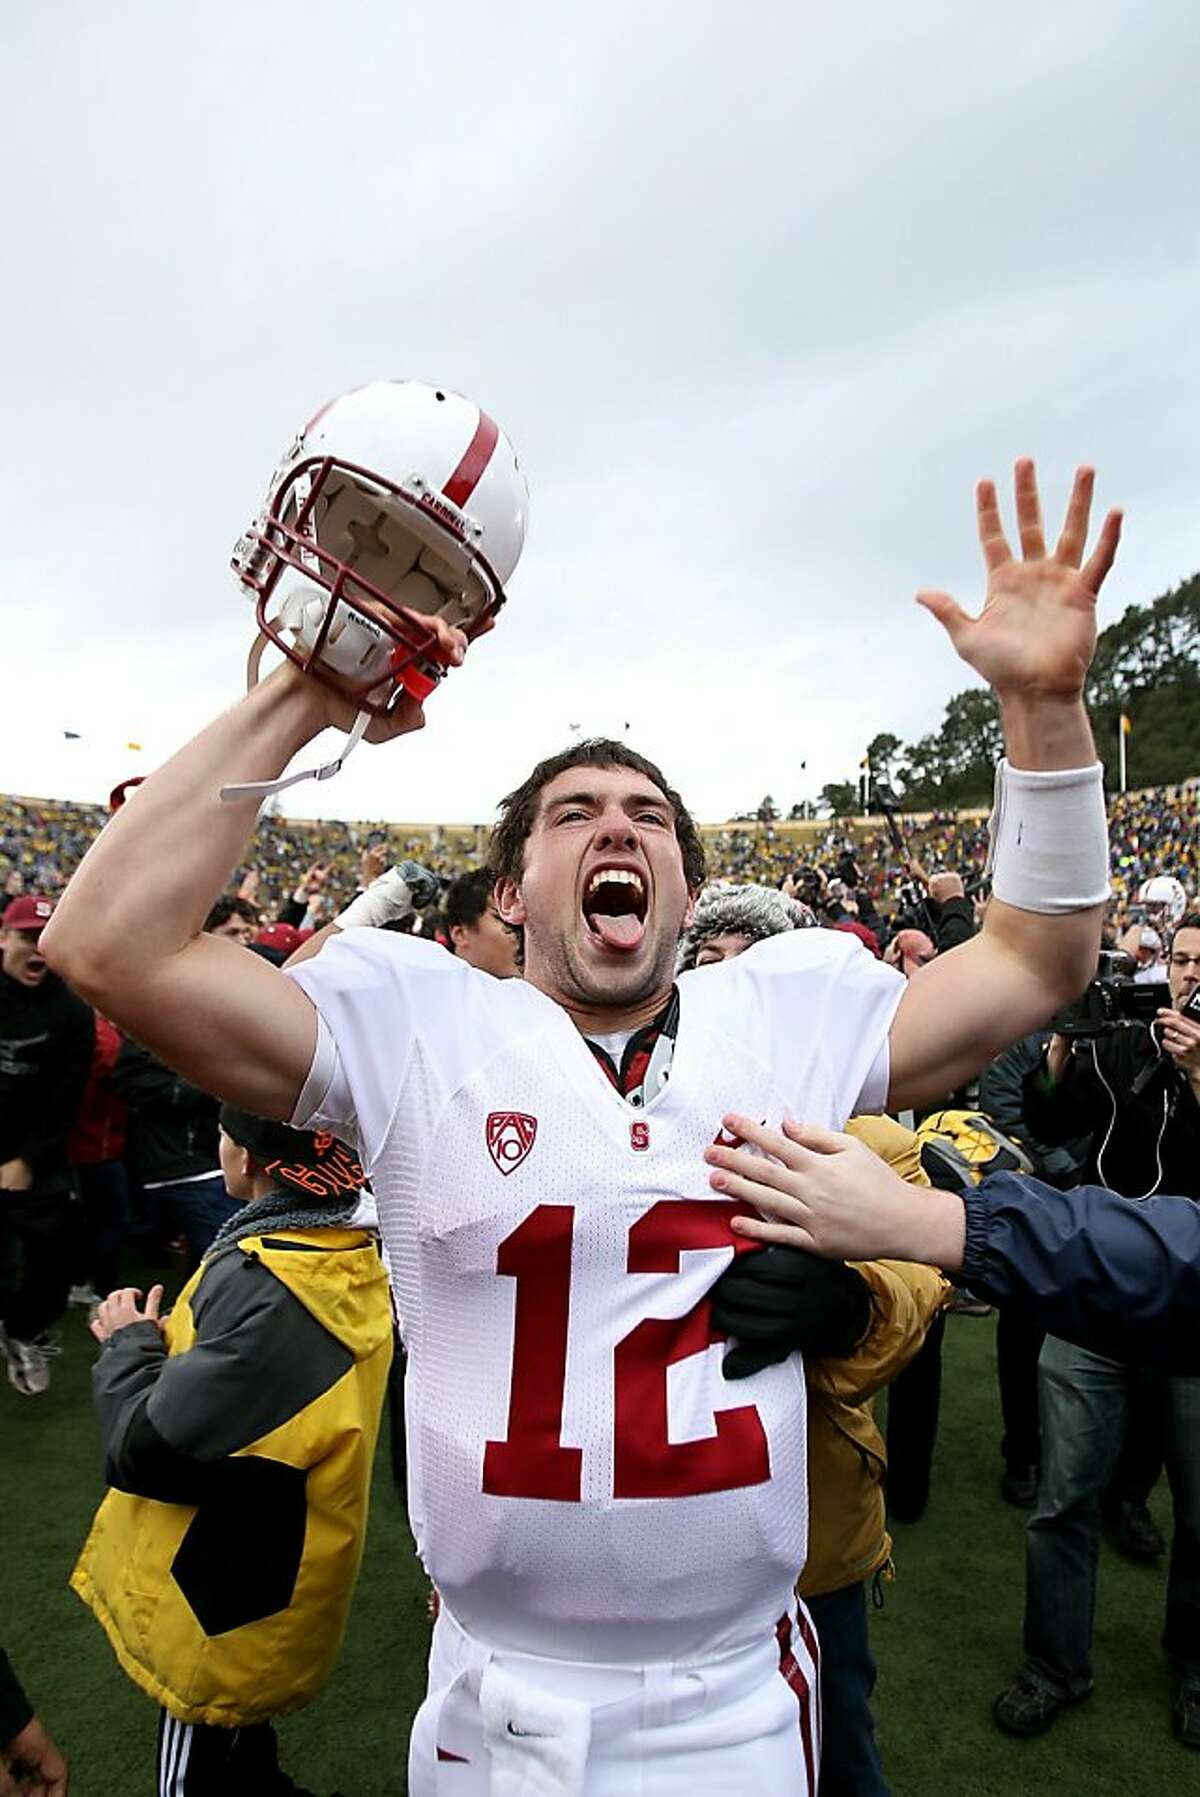 BERKELEY, CA - NOVEMBER 20: Andrew Luck #12 of the Stanford Cardinal celebrates after beating the California Golden Bears at California Memorial Stadium on November 20, 2010 in Berkeley, California. (Photo by Ezra Shaw/Getty Images) Ran on: 11-22-2010 Andrew Luck, exulting after Saturdays win, is a strong Heisman candidate. Ran on: 11-22-2010 Andrew Luck, exulting after Saturdays win, is a strong Heisman candidate.